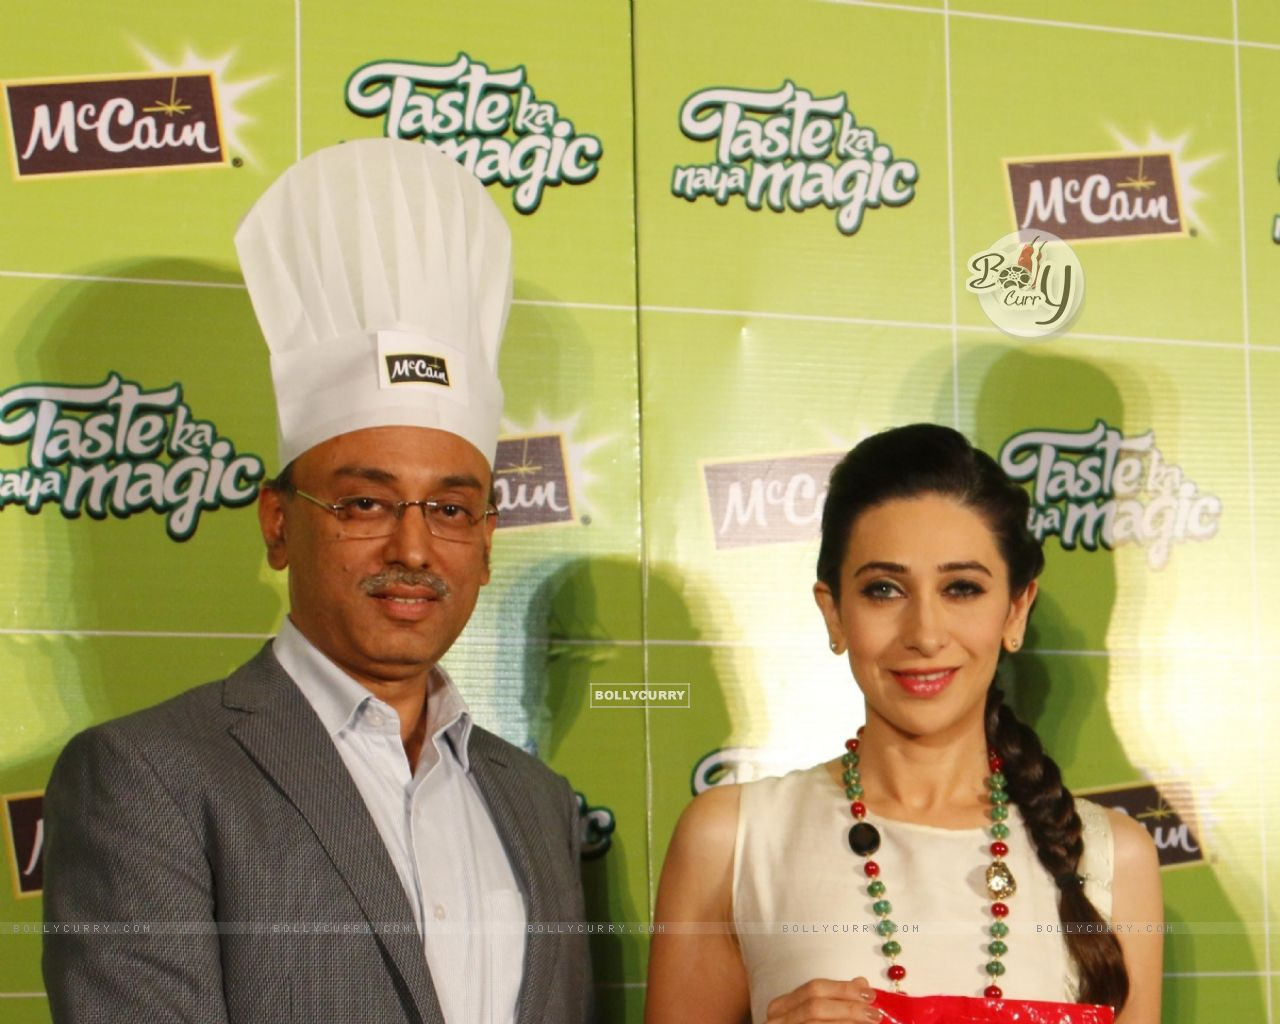 Karisma Kapoor at Launch of McCain Food Products (386575) size:1280x1024